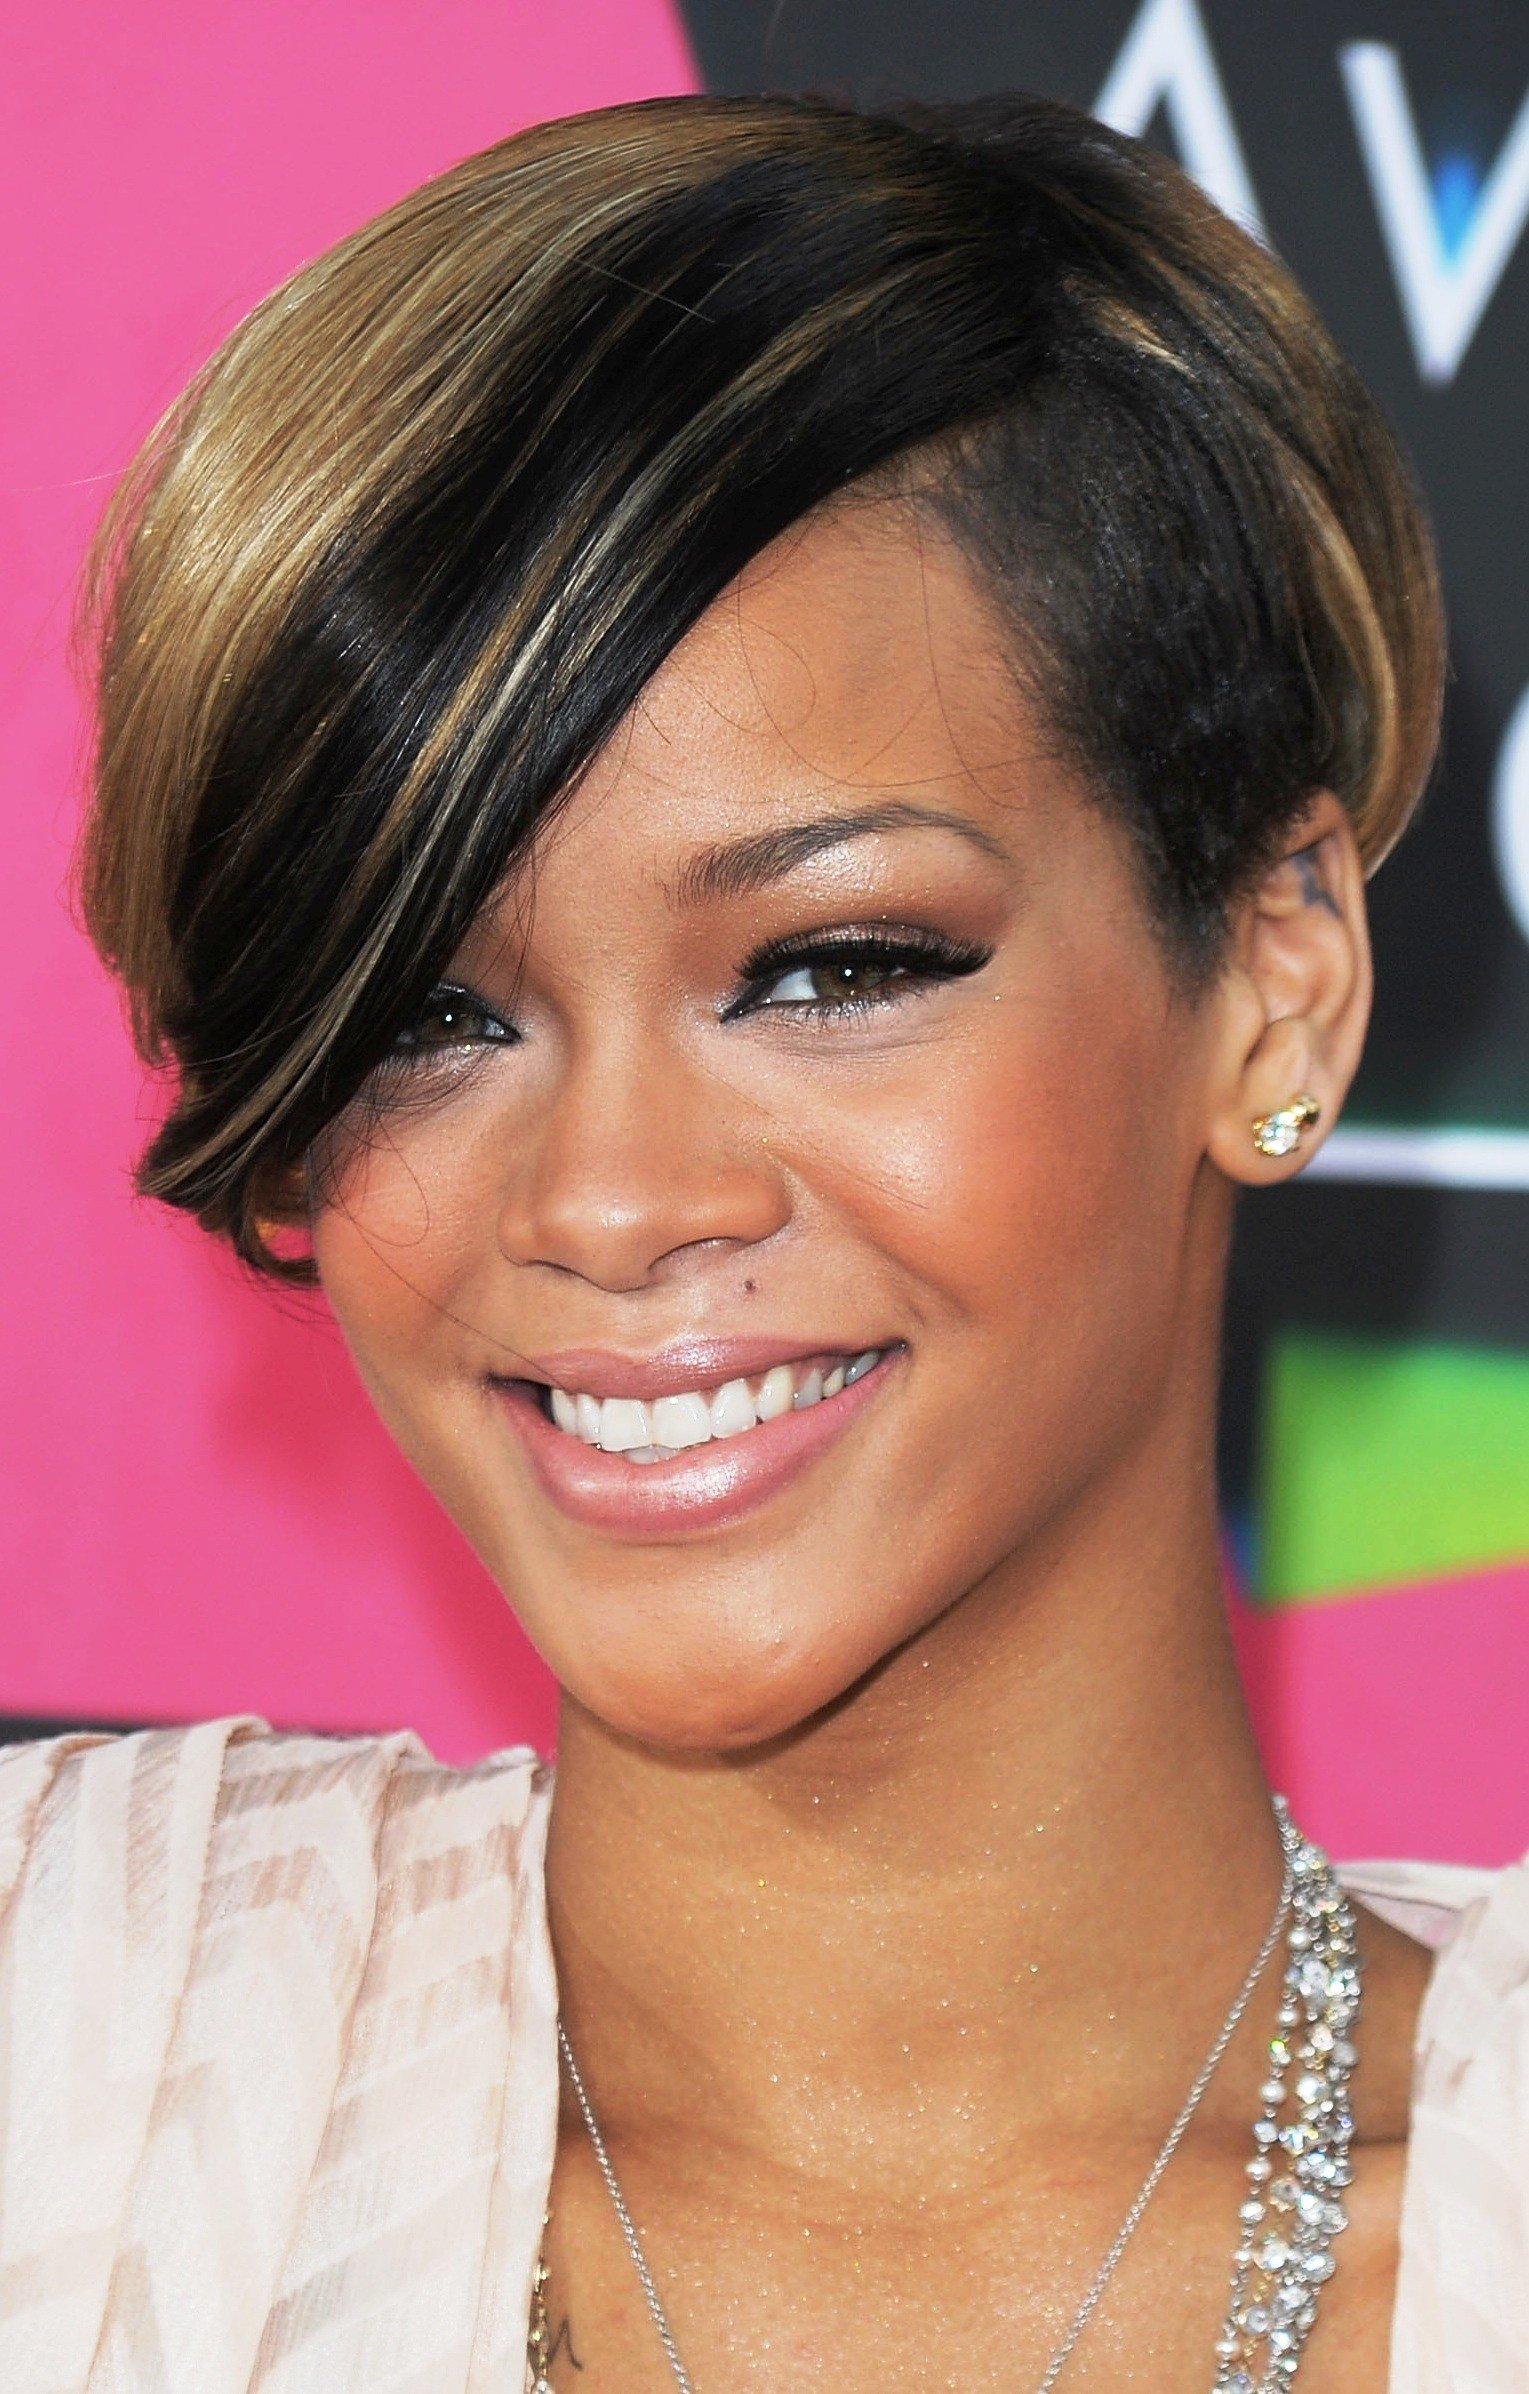 The Best 30 Short Hairstyles Ideas For Women Elle Hairstyles Pictures